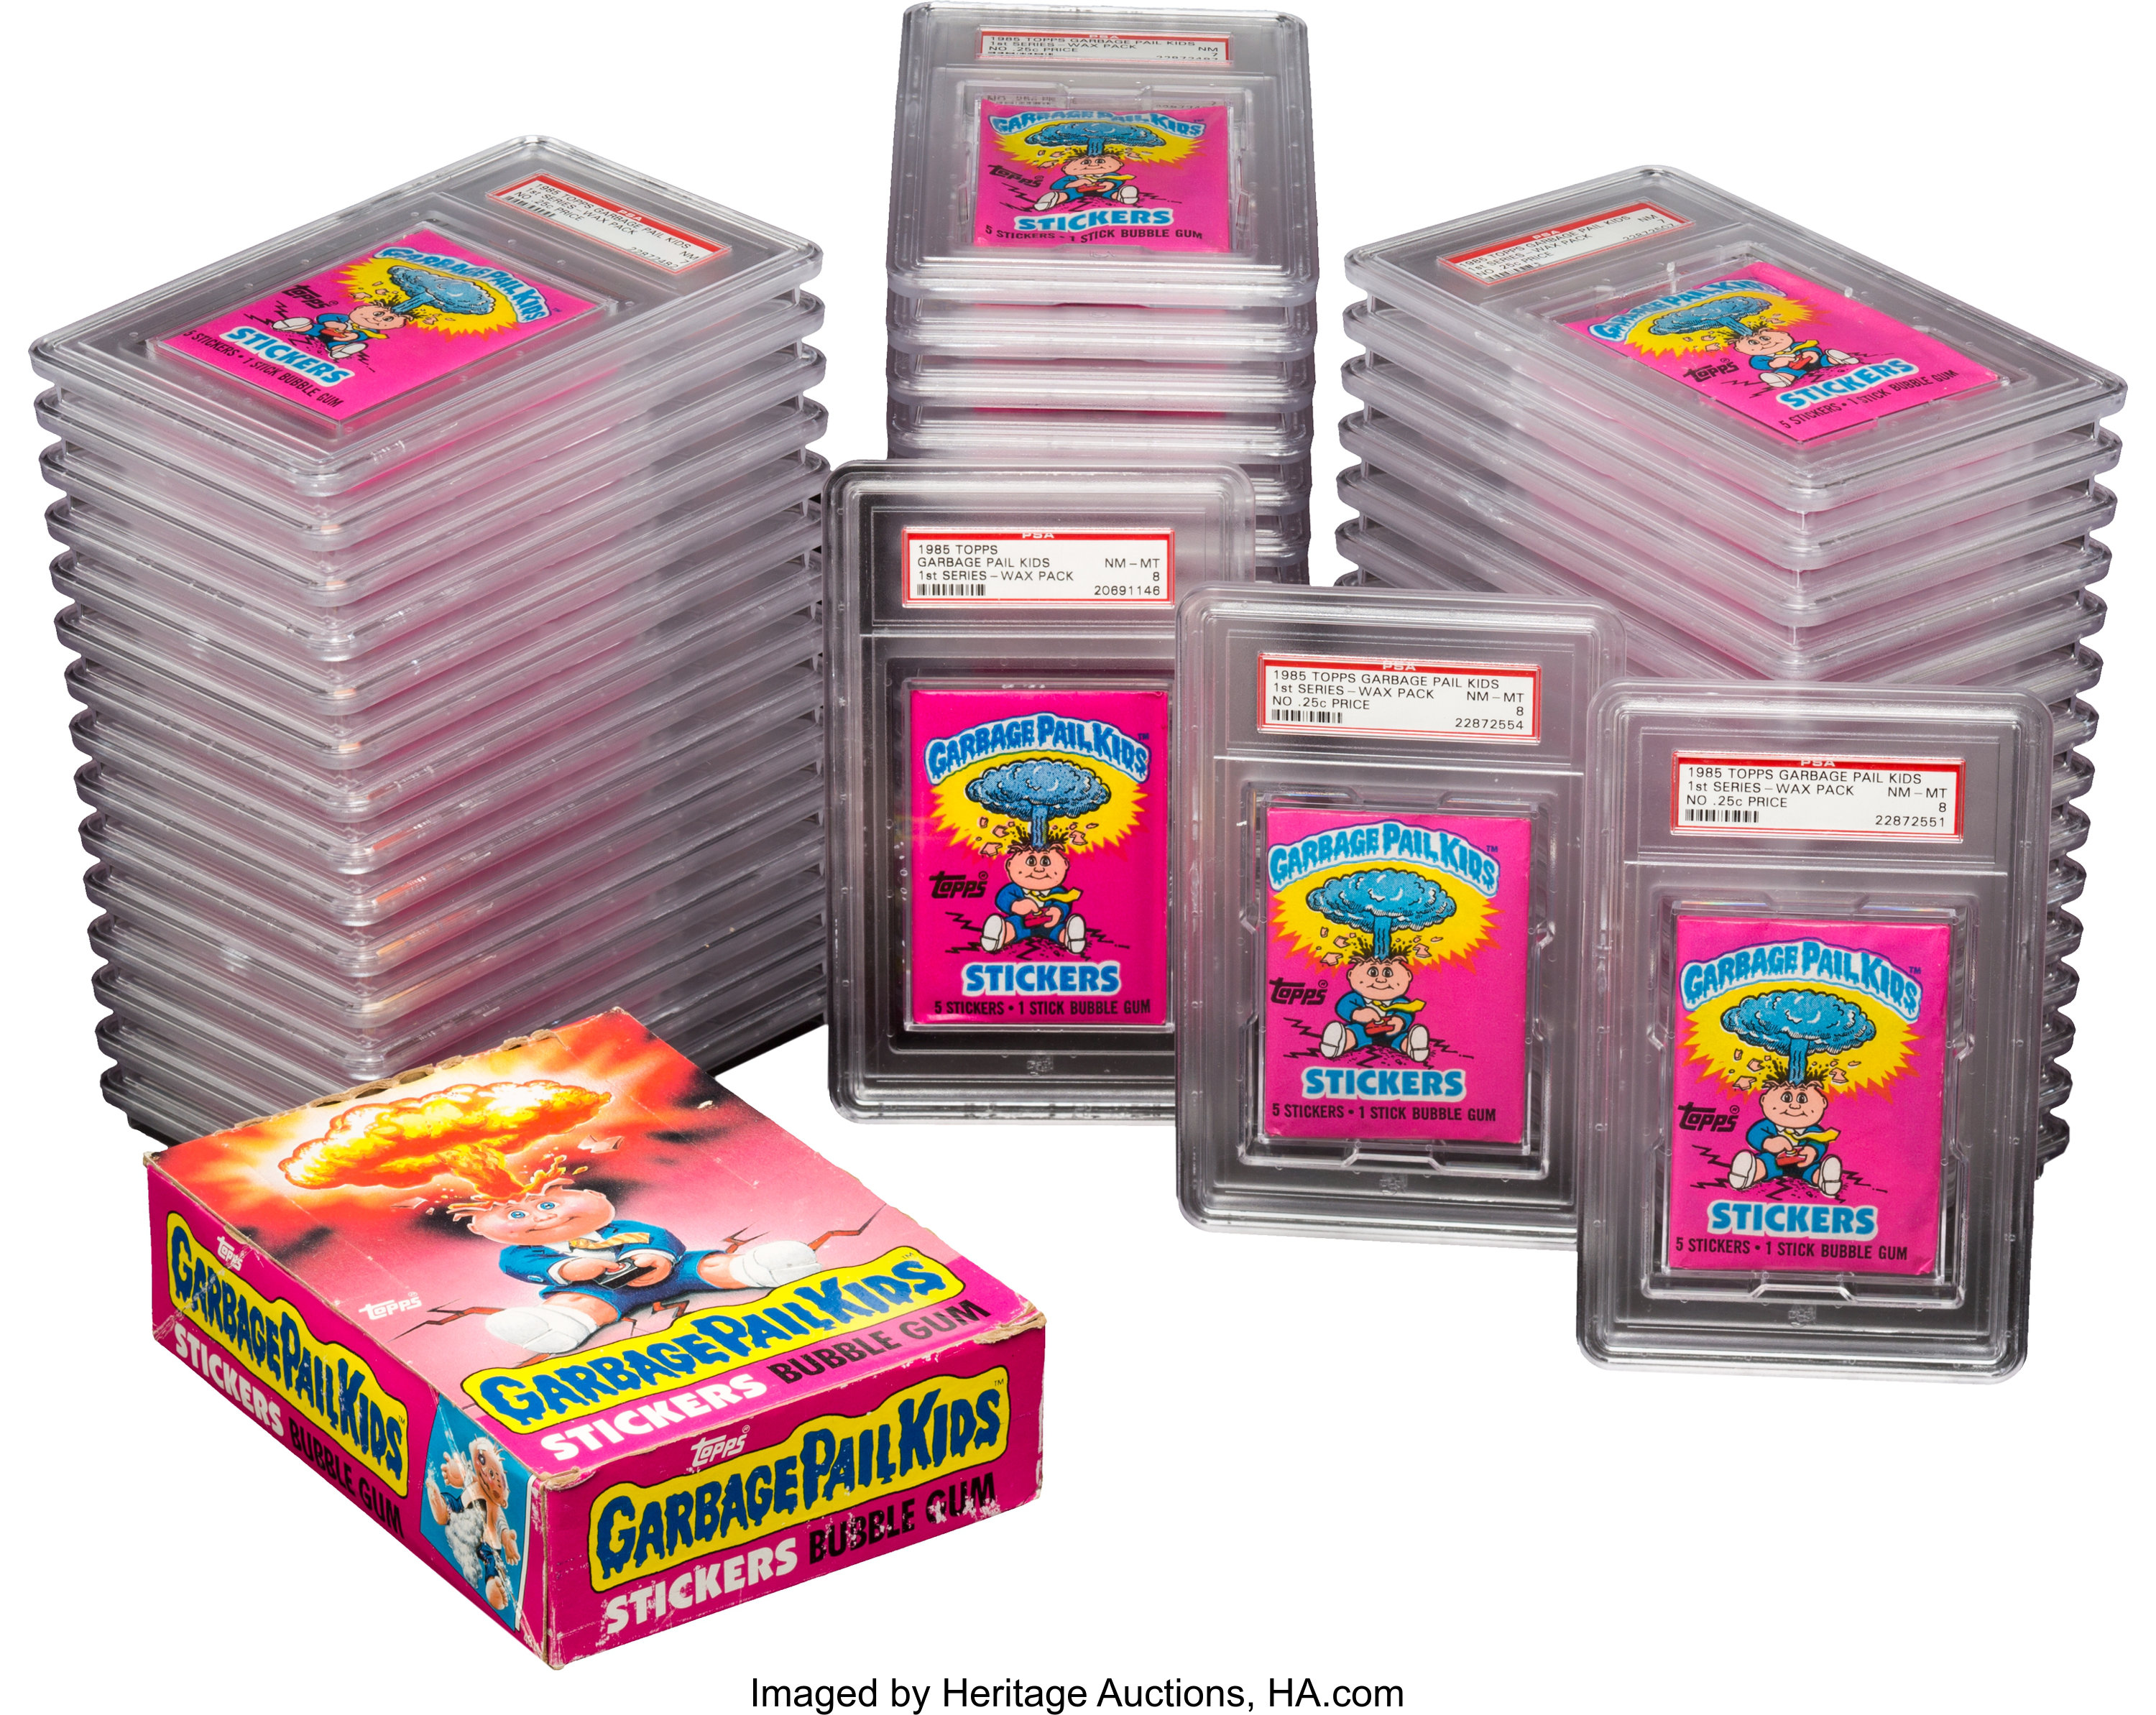 1985 Topps Garbage Pail Kids Series 1 Wax Box And 48 Psa Graded Lot 81485 Heritage Auctions